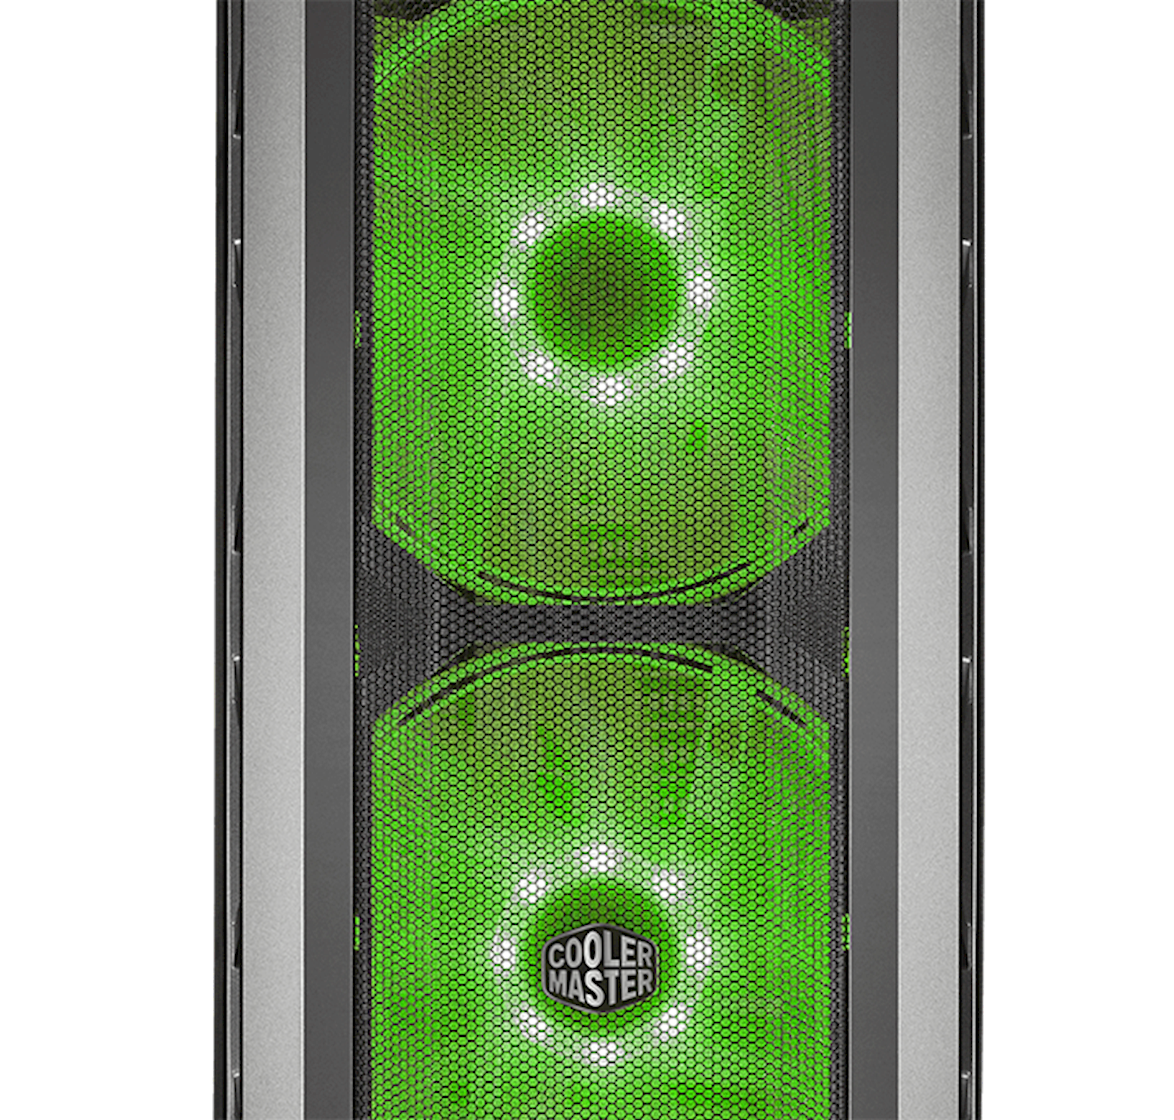 Two 200mm Rgb Fans Behind A Mesh Front Panel